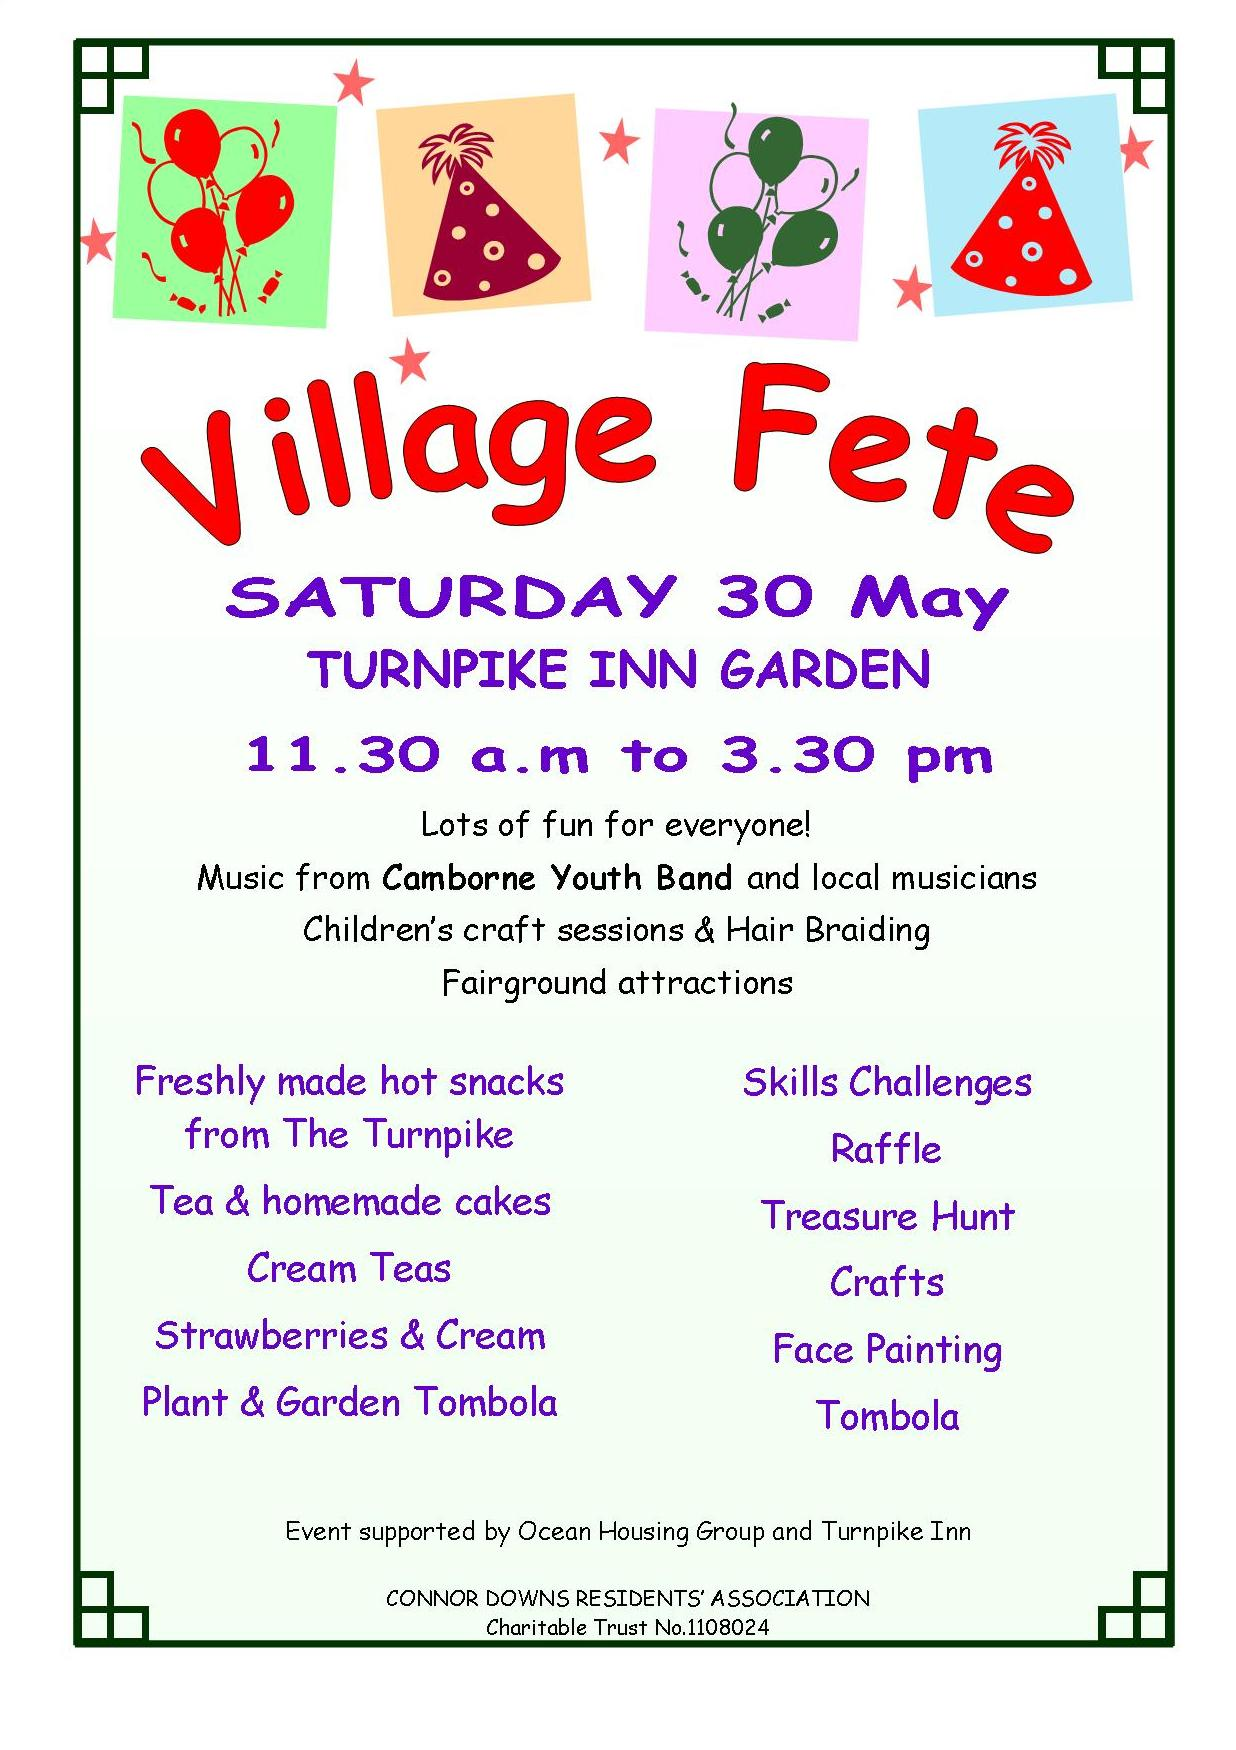 Connor Downs Village Fete – Saturday 30th May